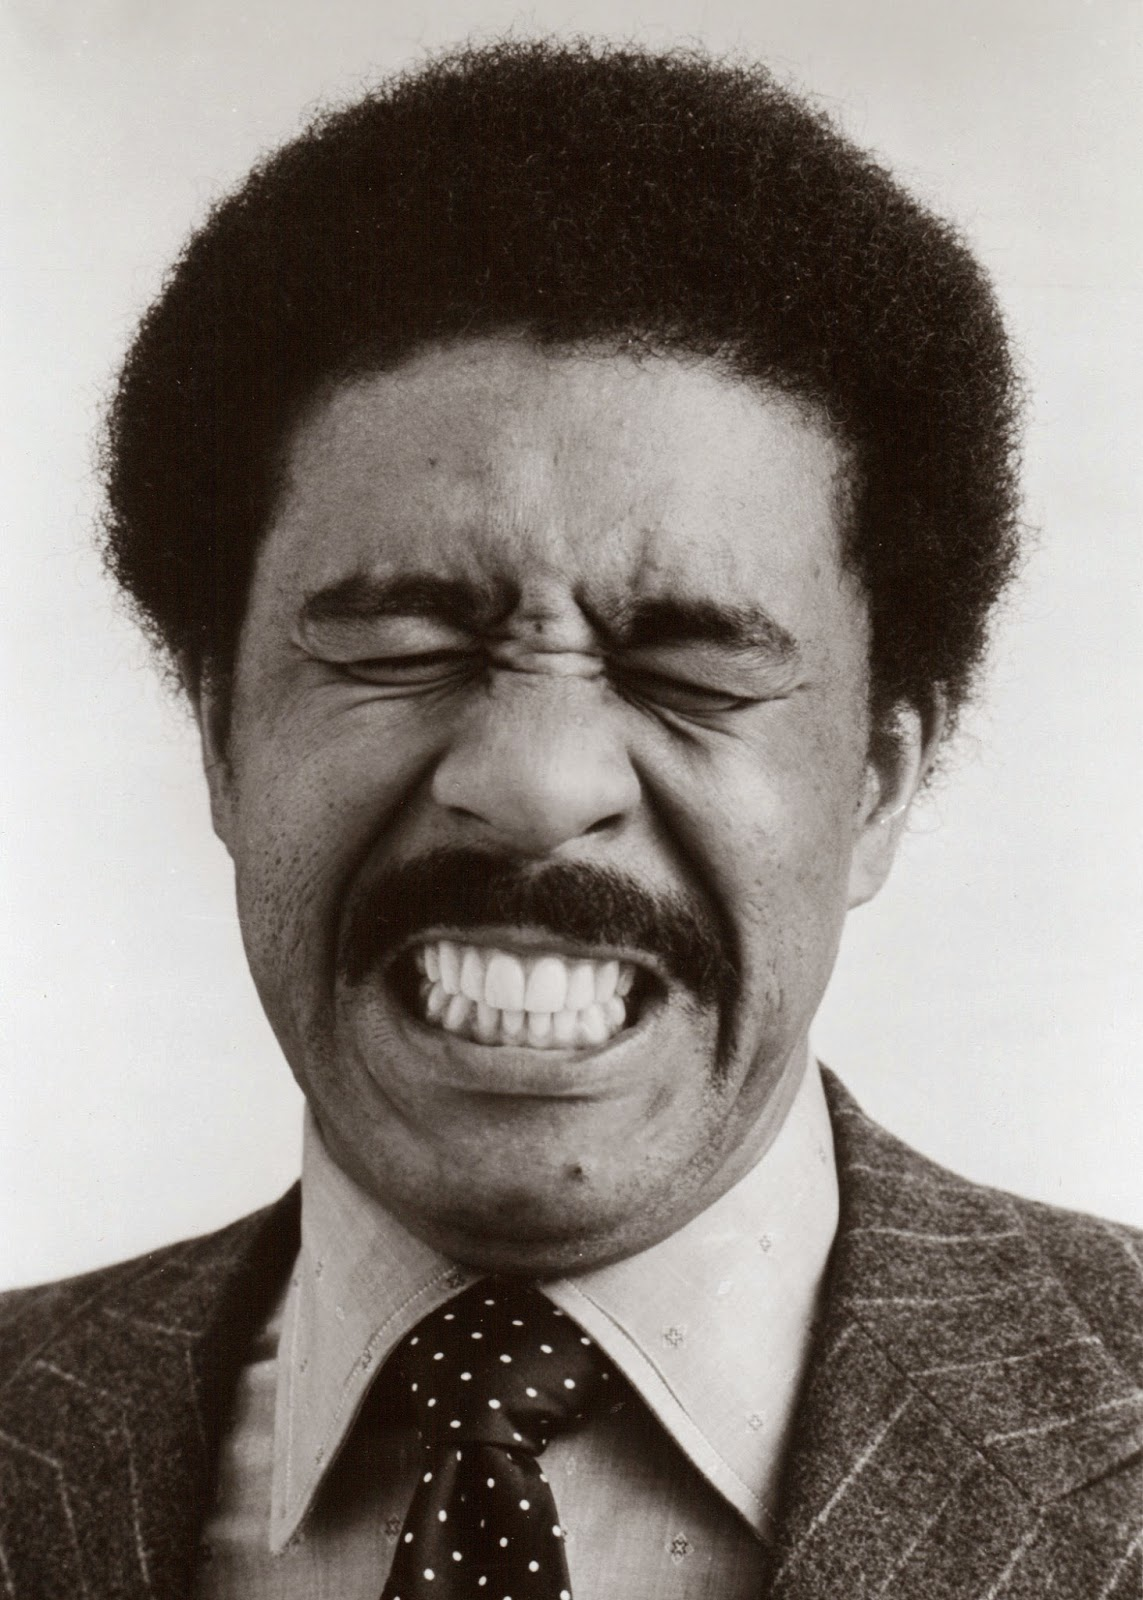 Honoring Richard Pryor - richardpryor